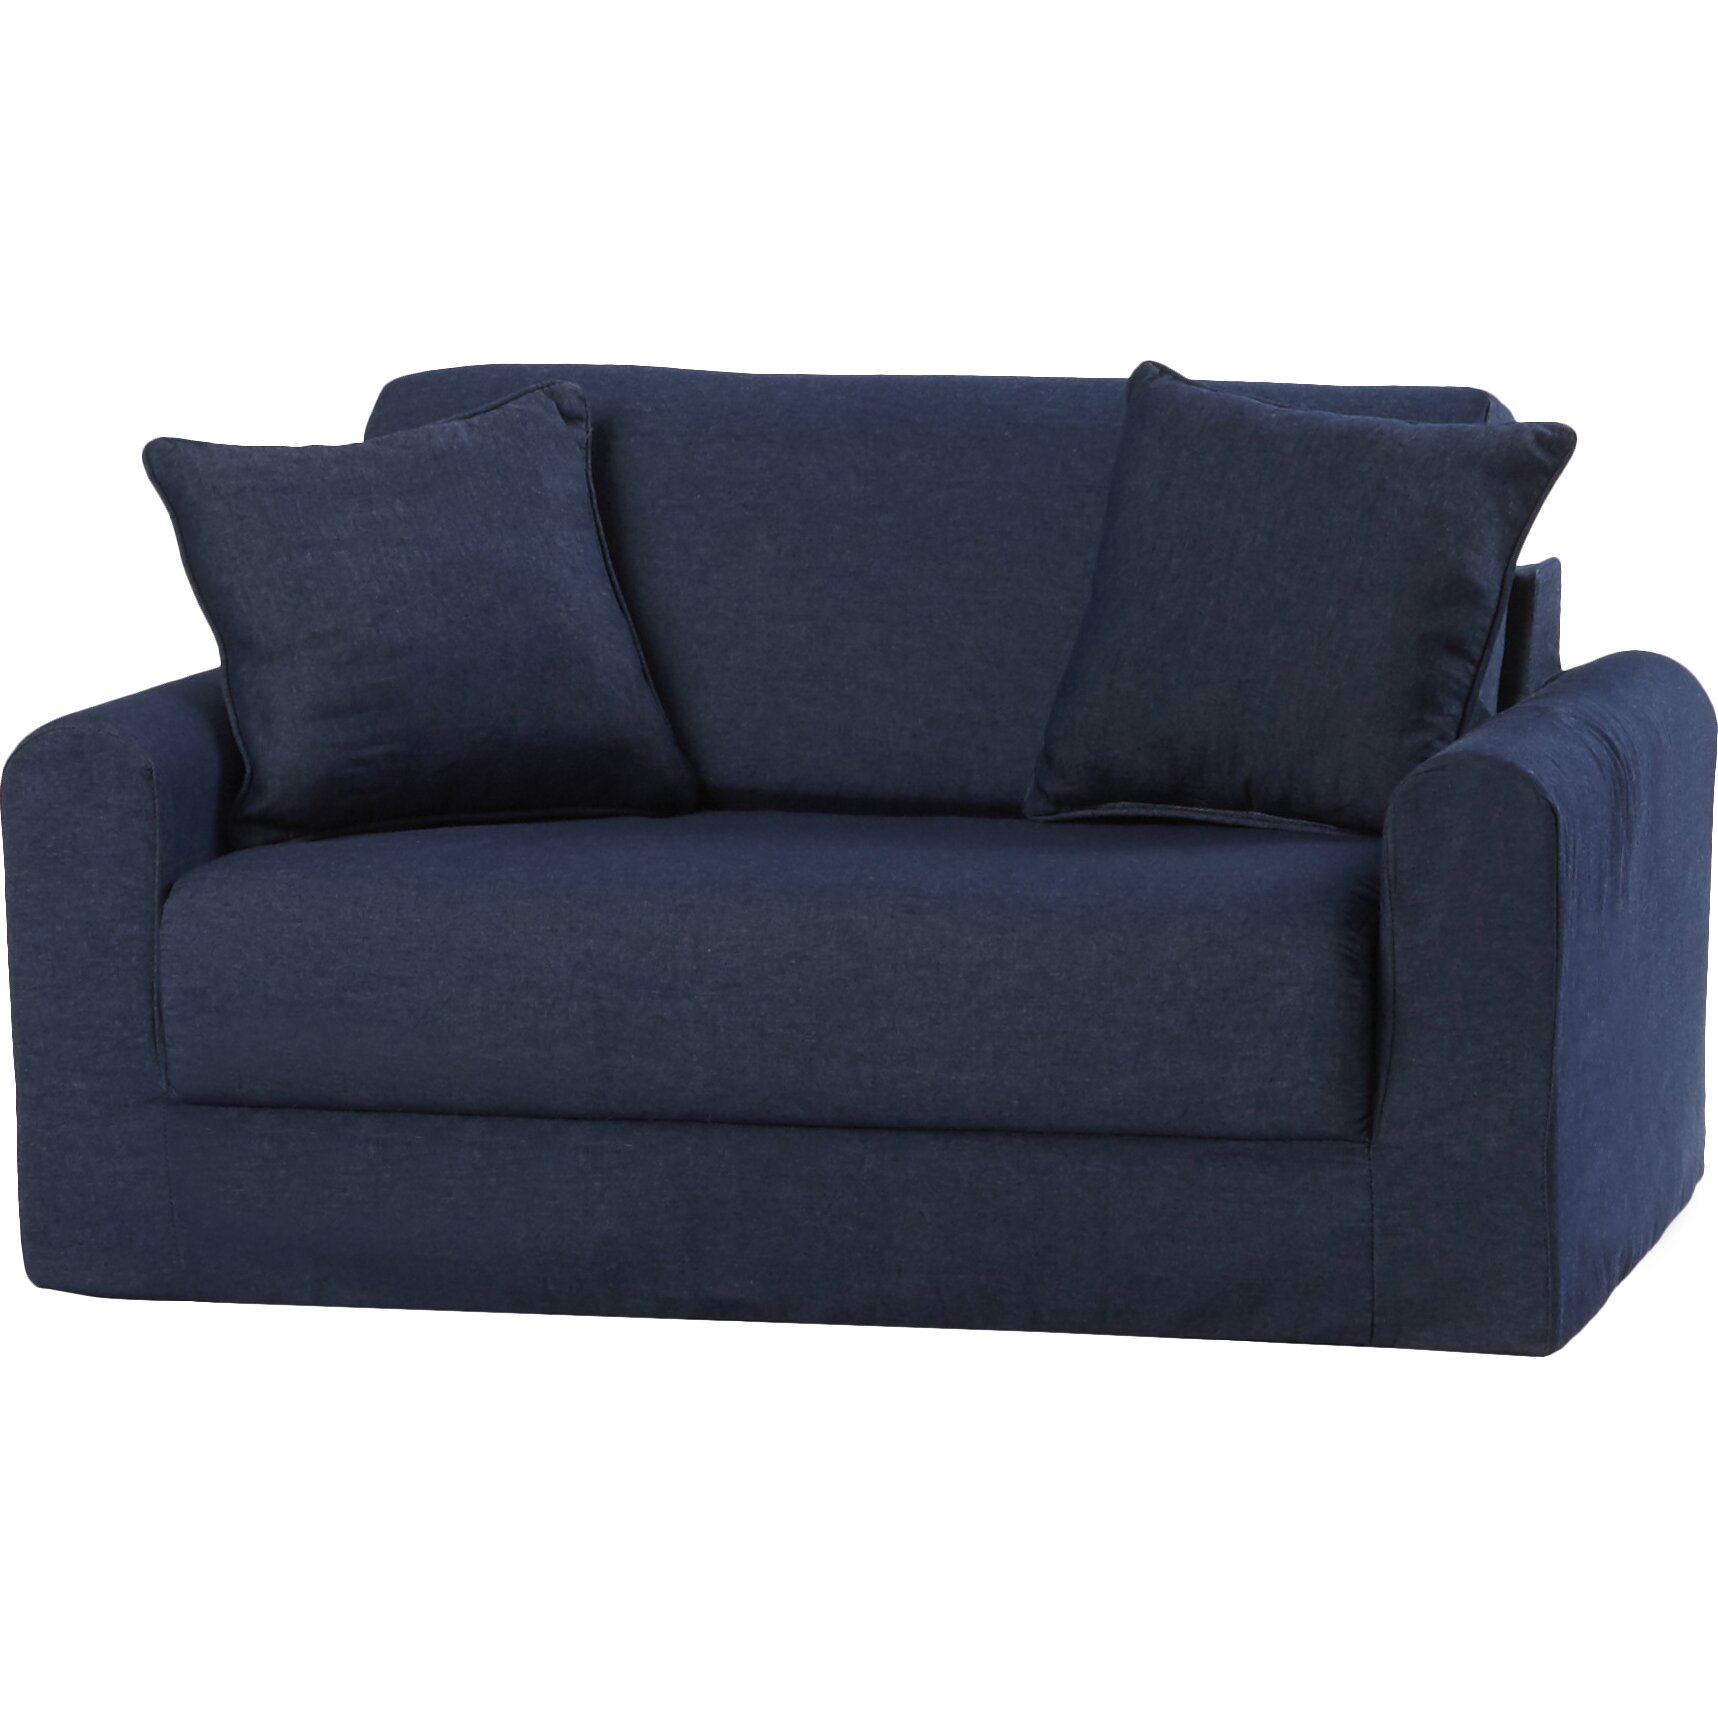 Fun furnishings children 39 s suede sofa sleeper reviews for Suede sectional